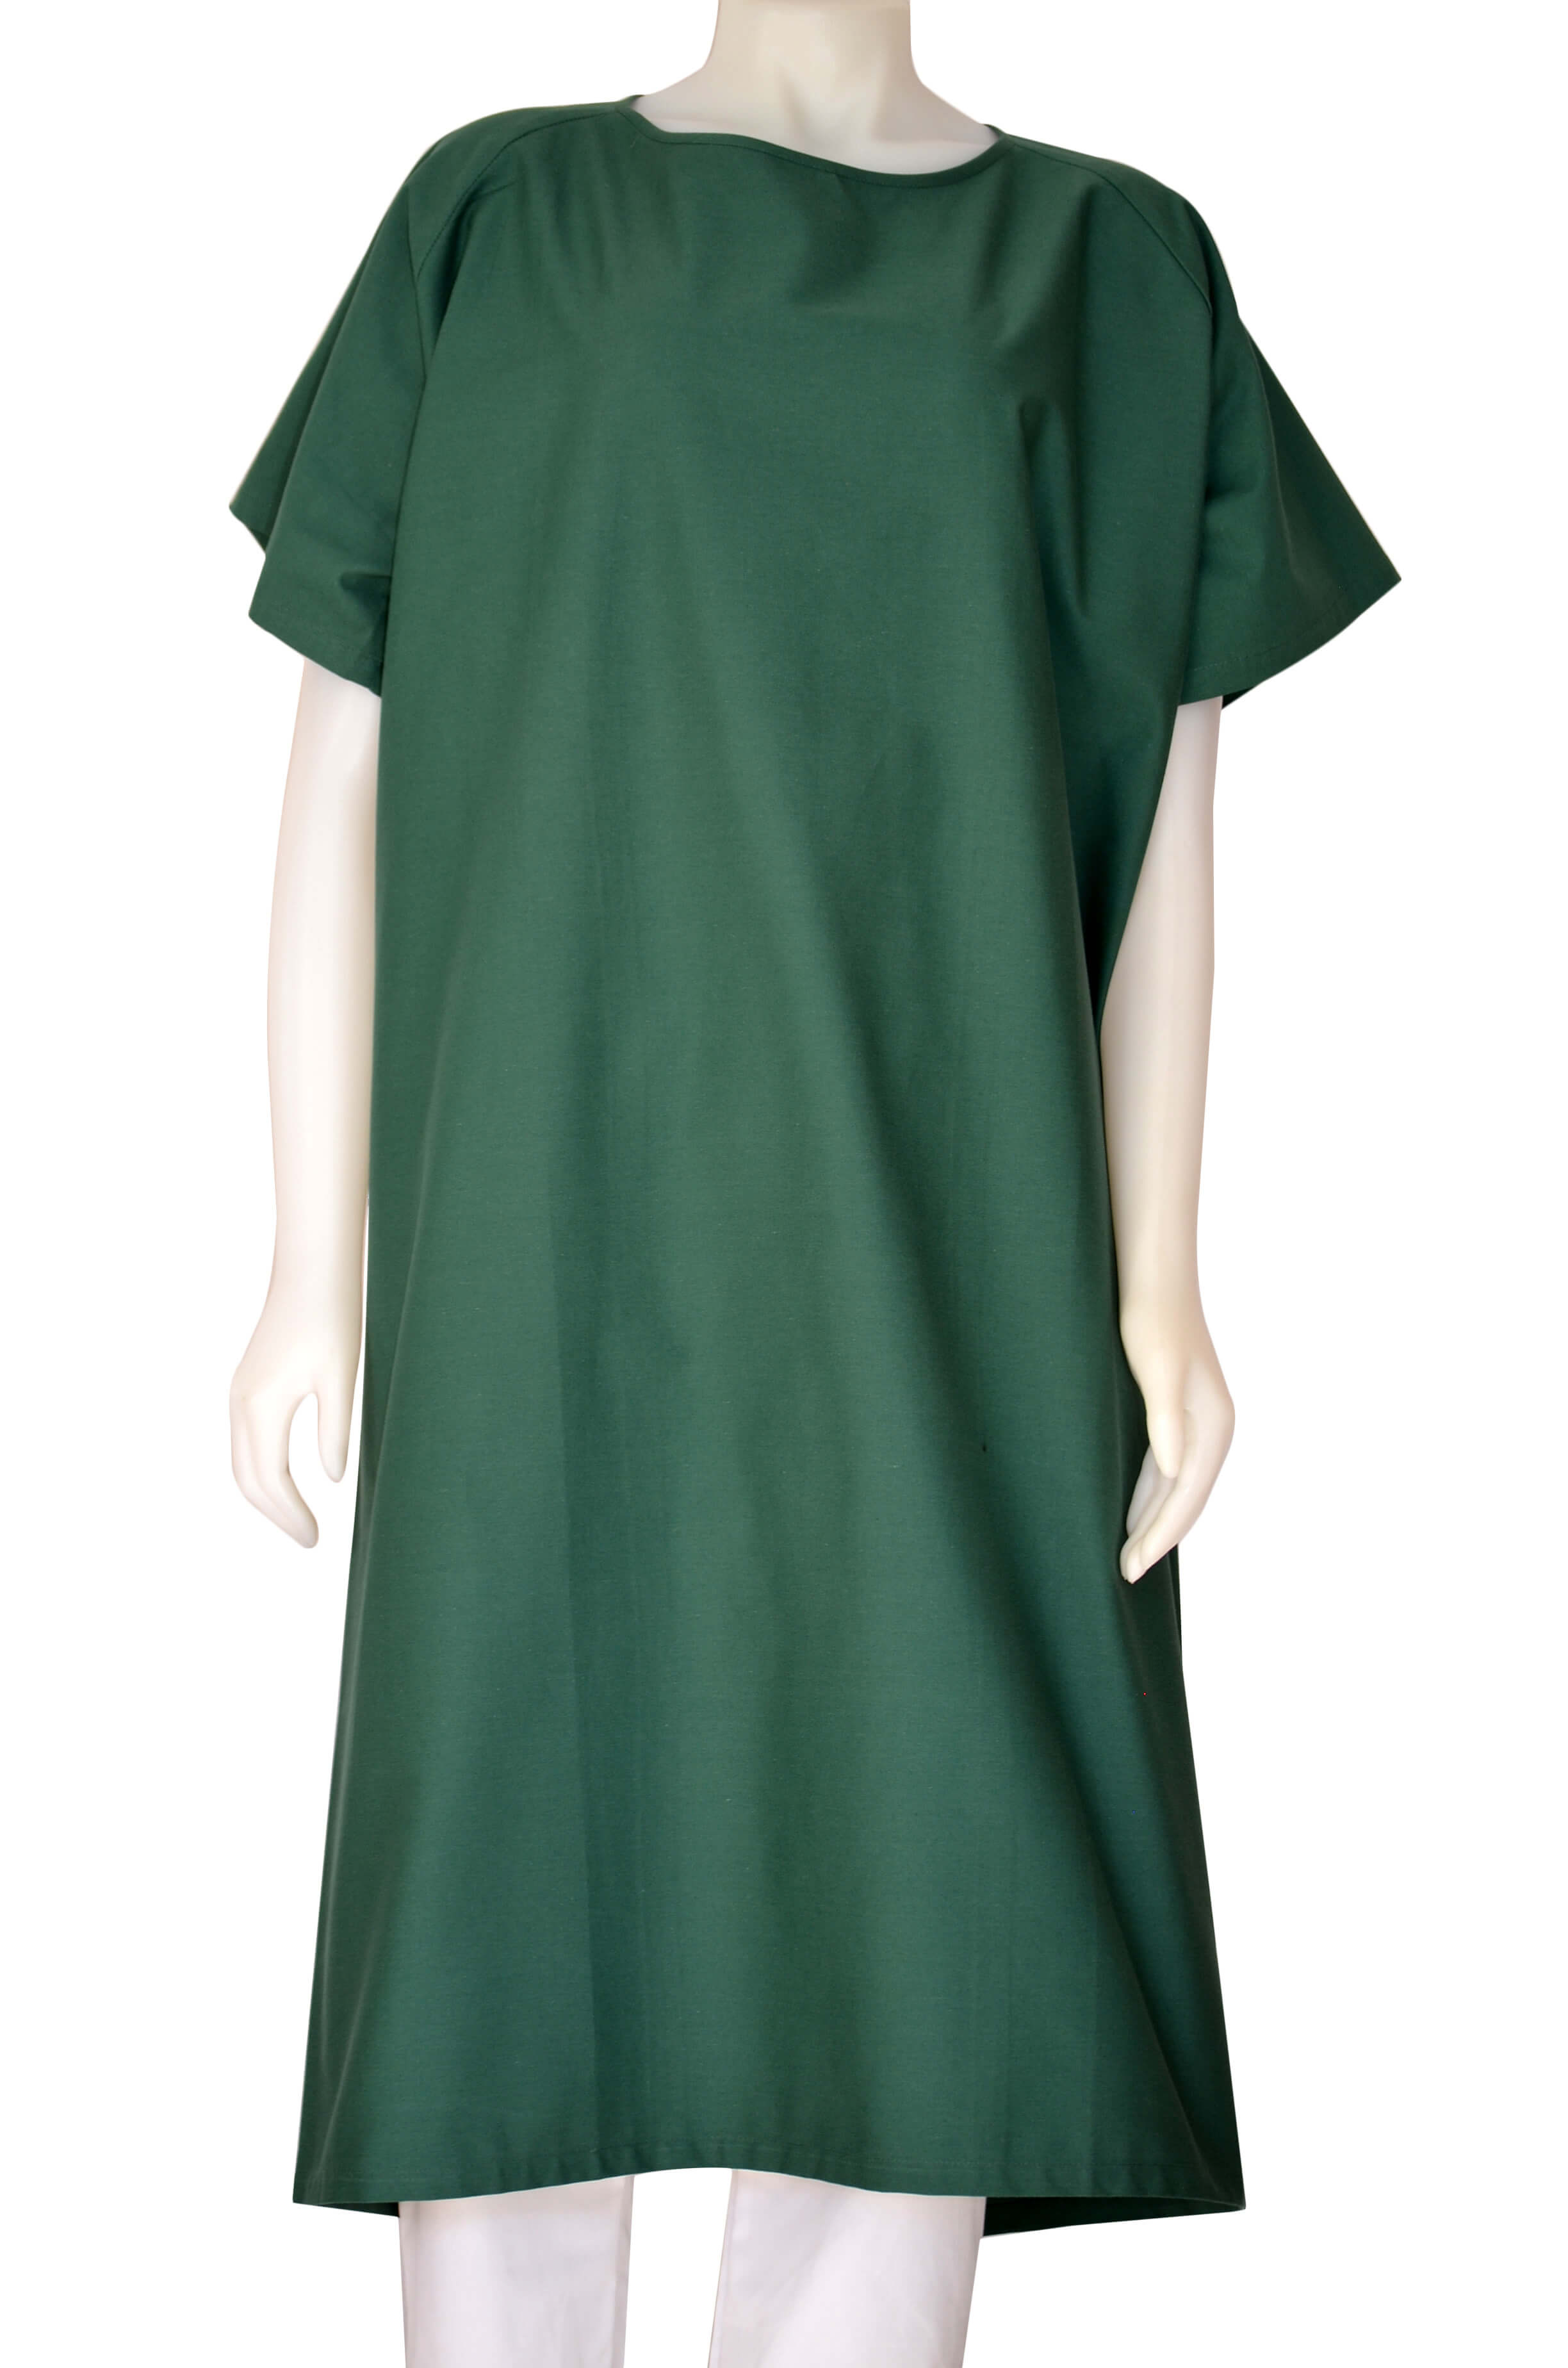 Modern Surgical Gowns Australia Model - Best Evening Gown ...